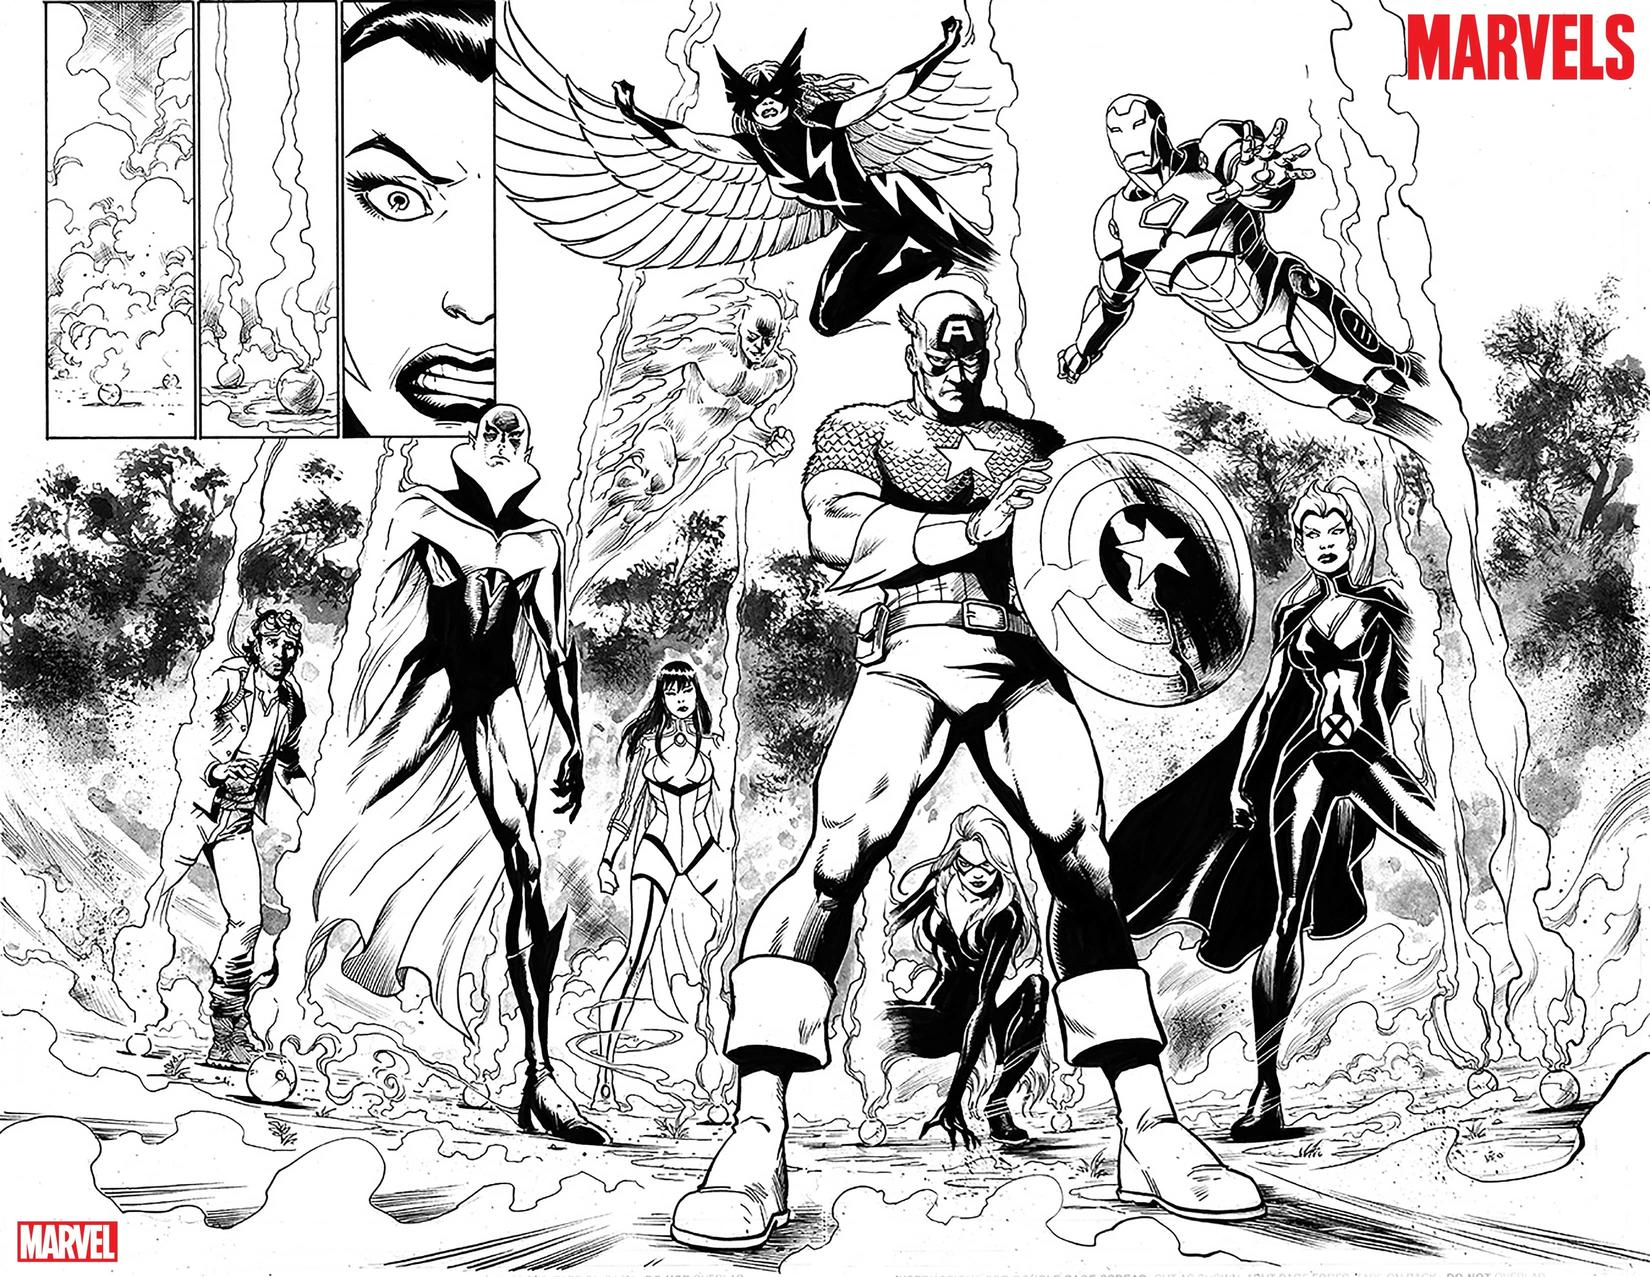 the marvels 1 horizontal spread page